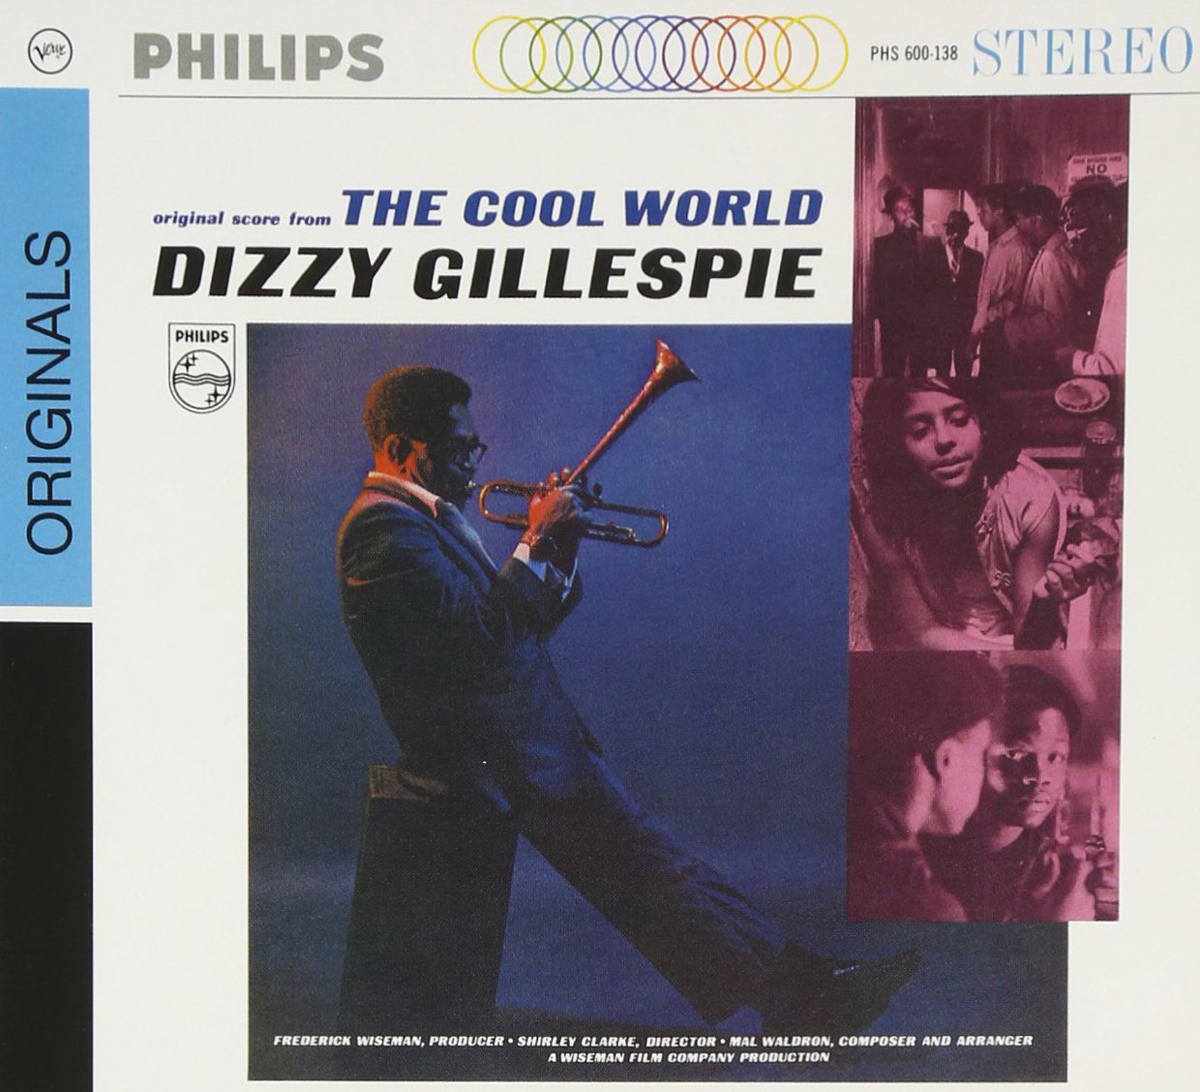 Dizzy Gillespie. The Cool World fashion cool punk style pendant necklace 1922 dual plate theme